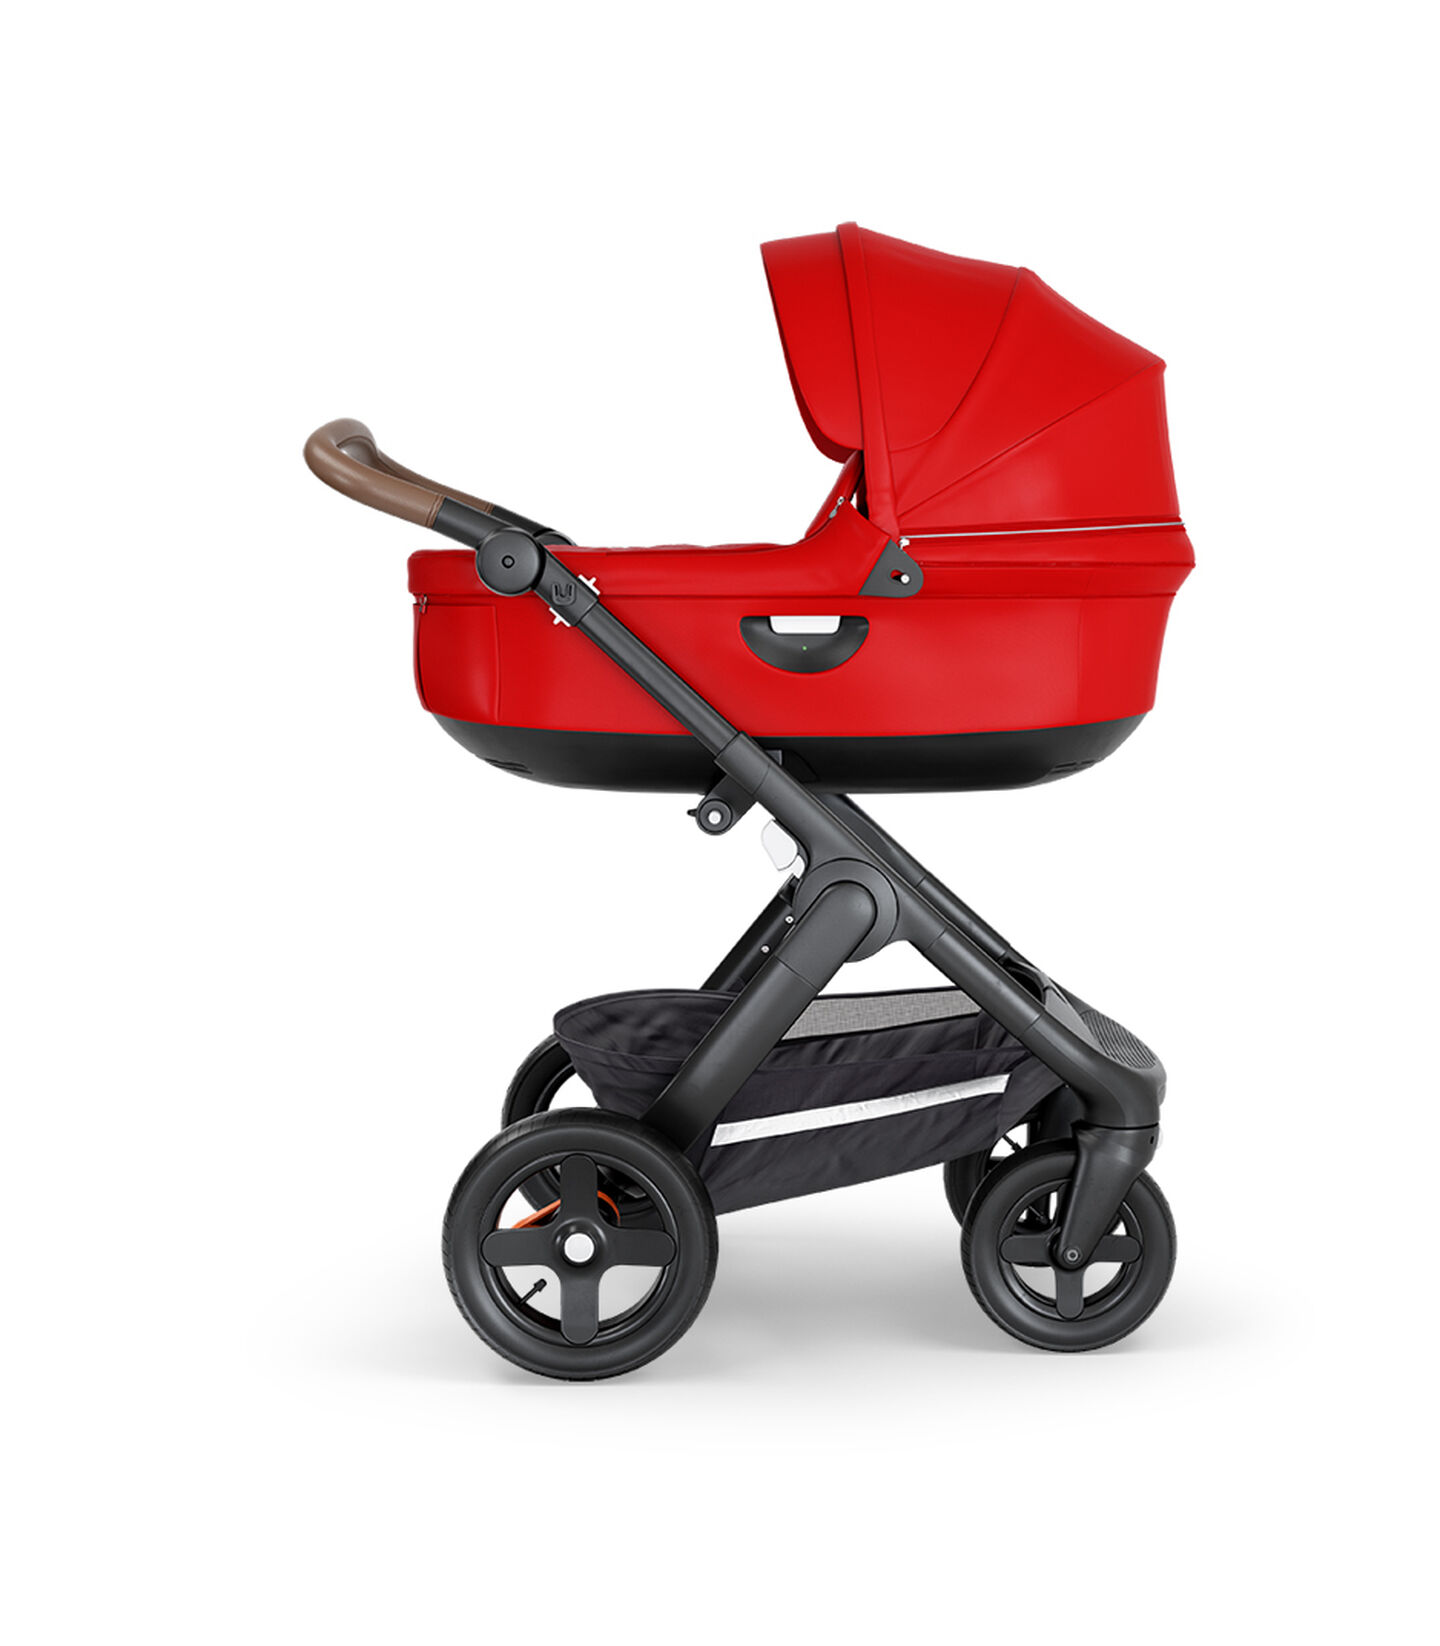 Stokke® Trailz™ with Black Chassis, Brown Leatherette and Terrain Wheels. Stokke® Stroller Carry Cot, Red.